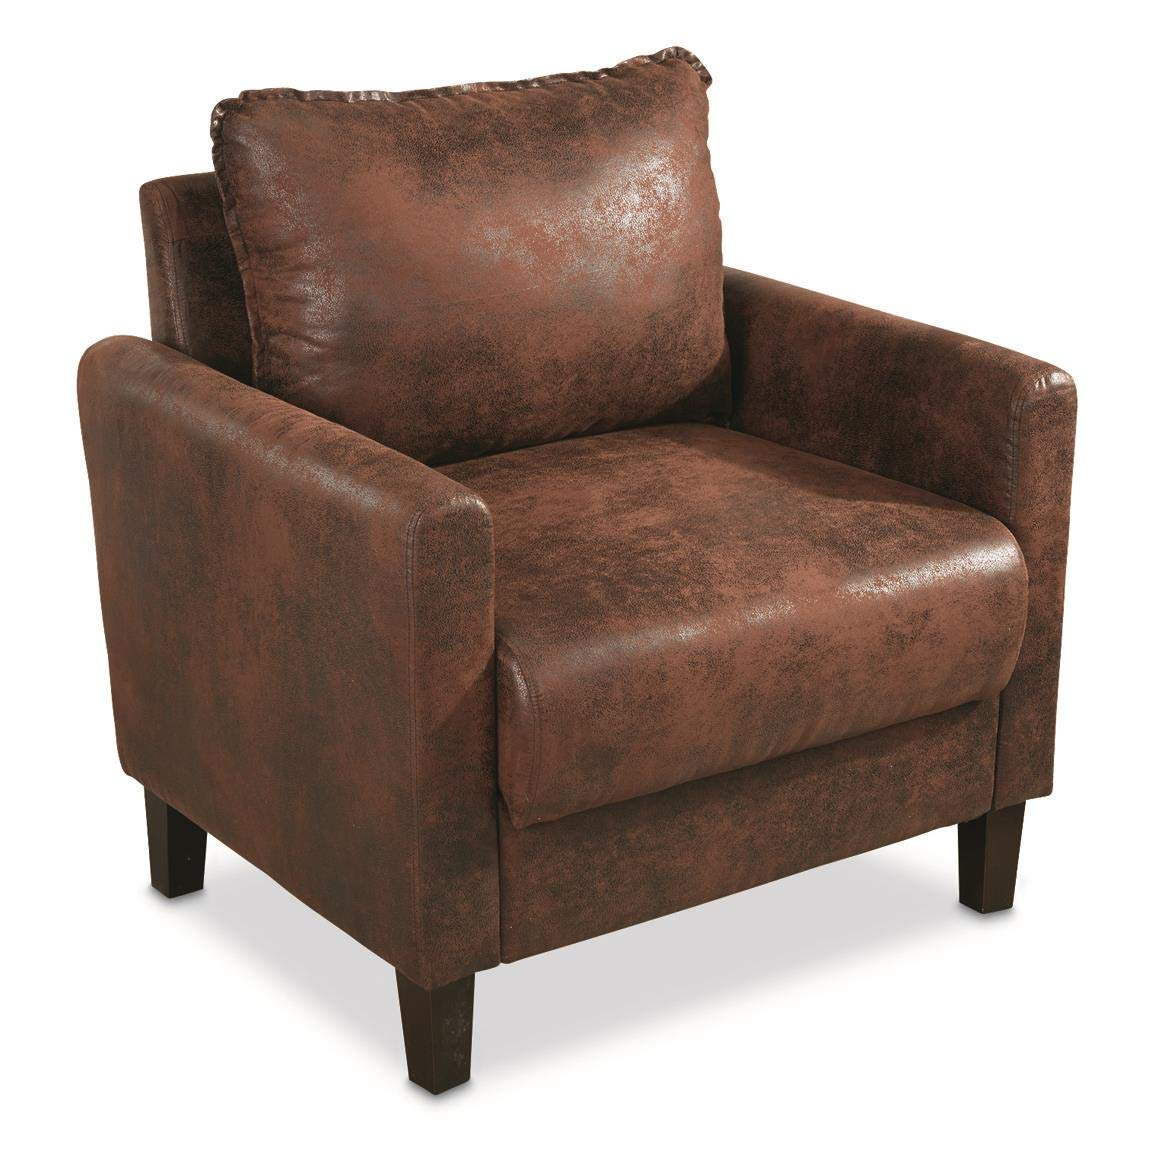 CASTLECREEK Oversized Concealment Chair